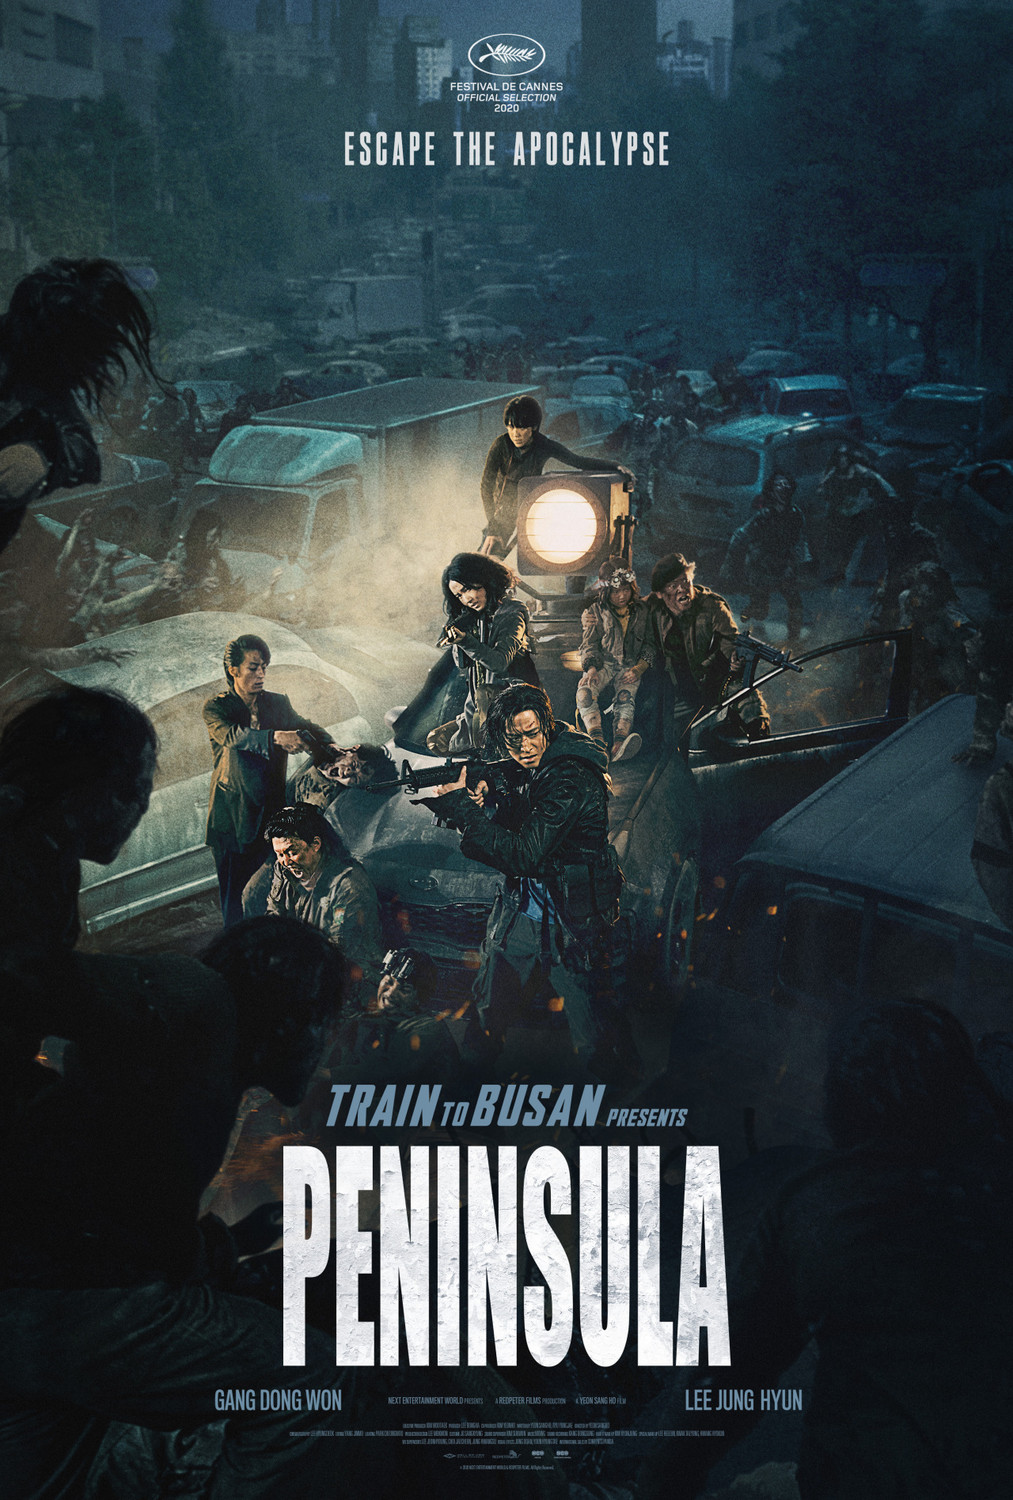 Train to Busan 2 - Peninsula.2020